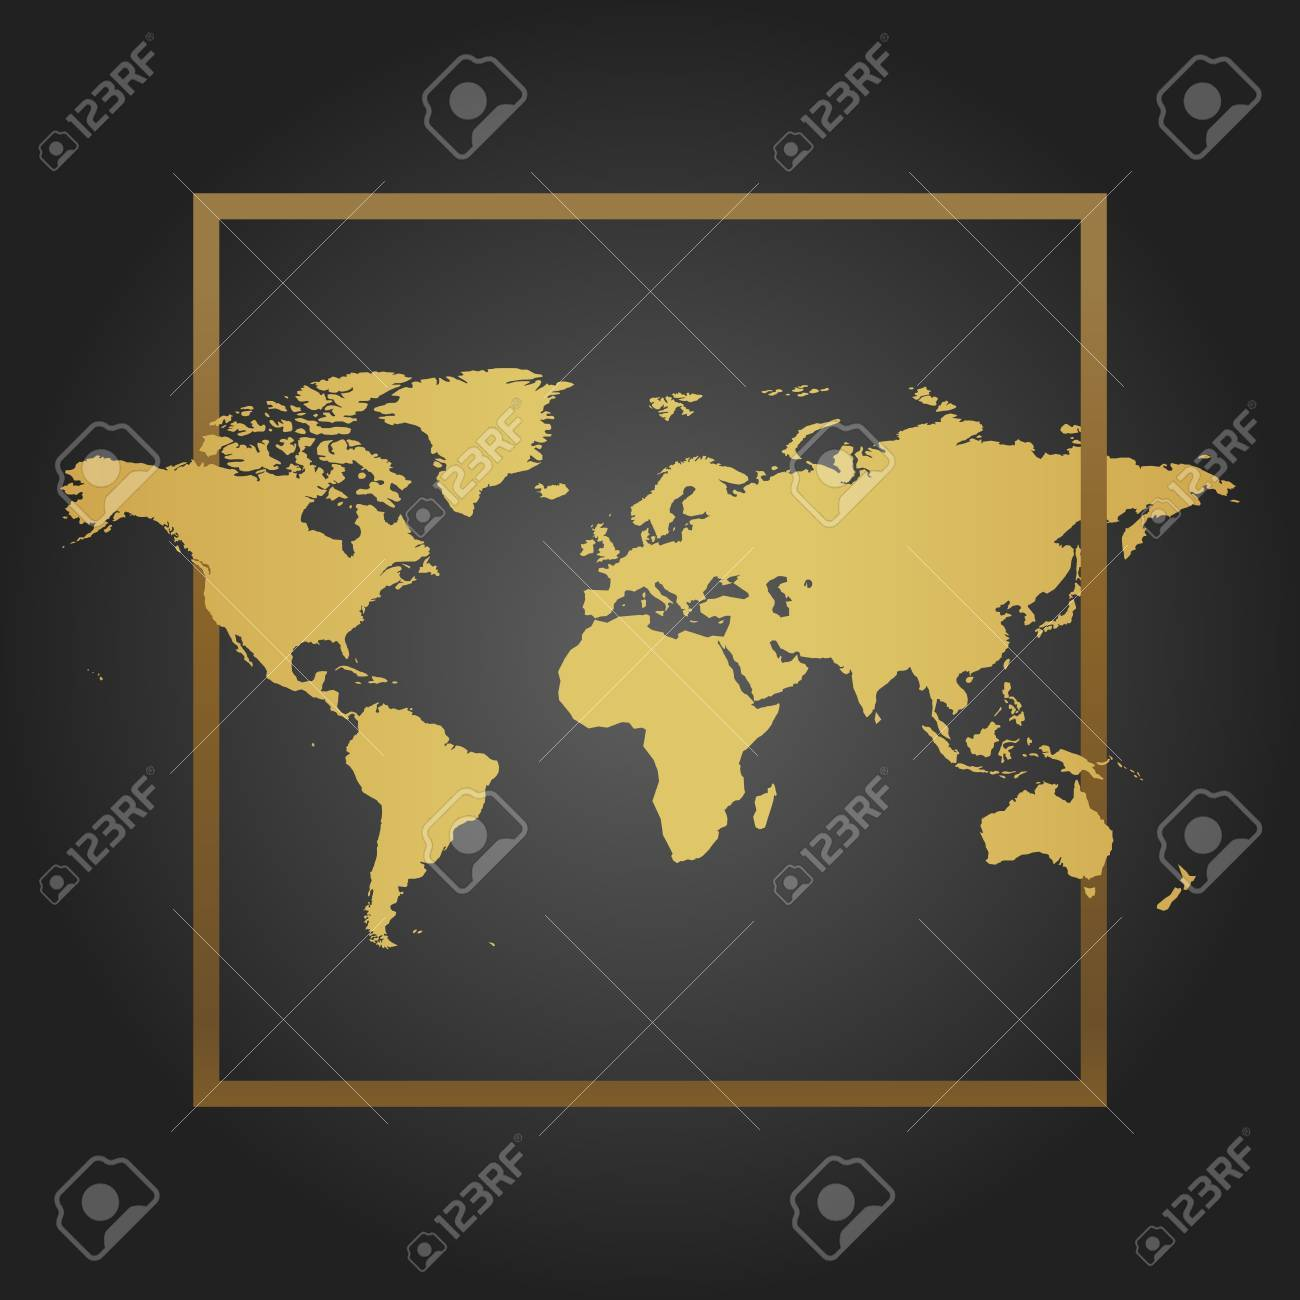 Golden political world map in black background with frame space golden political world map in black background with frame space for text and quotes gumiabroncs